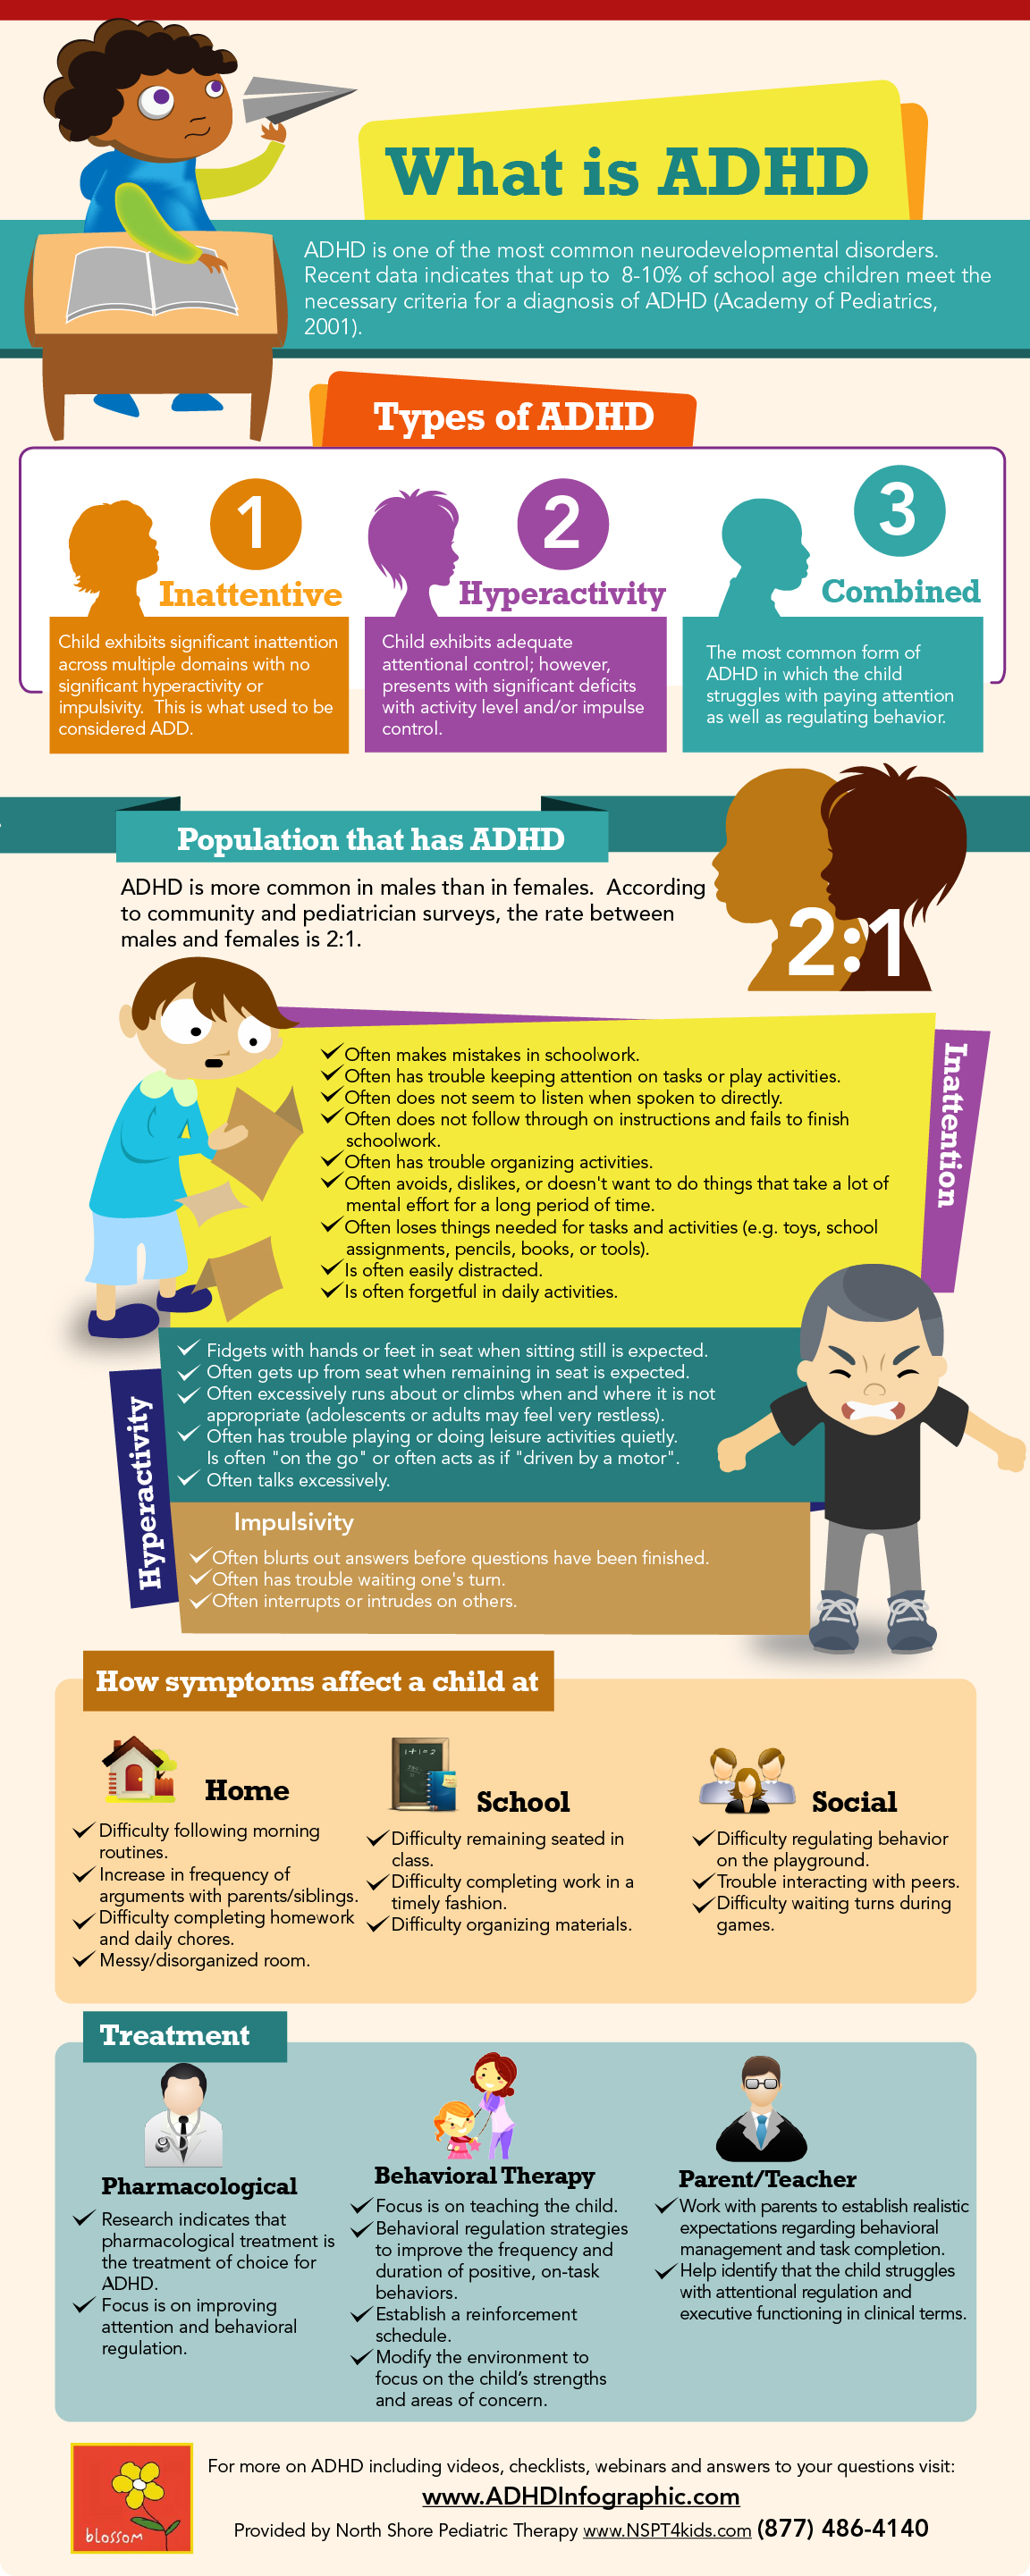 What is ADHD? An Infographic | Valentin & Blackstock Psychology